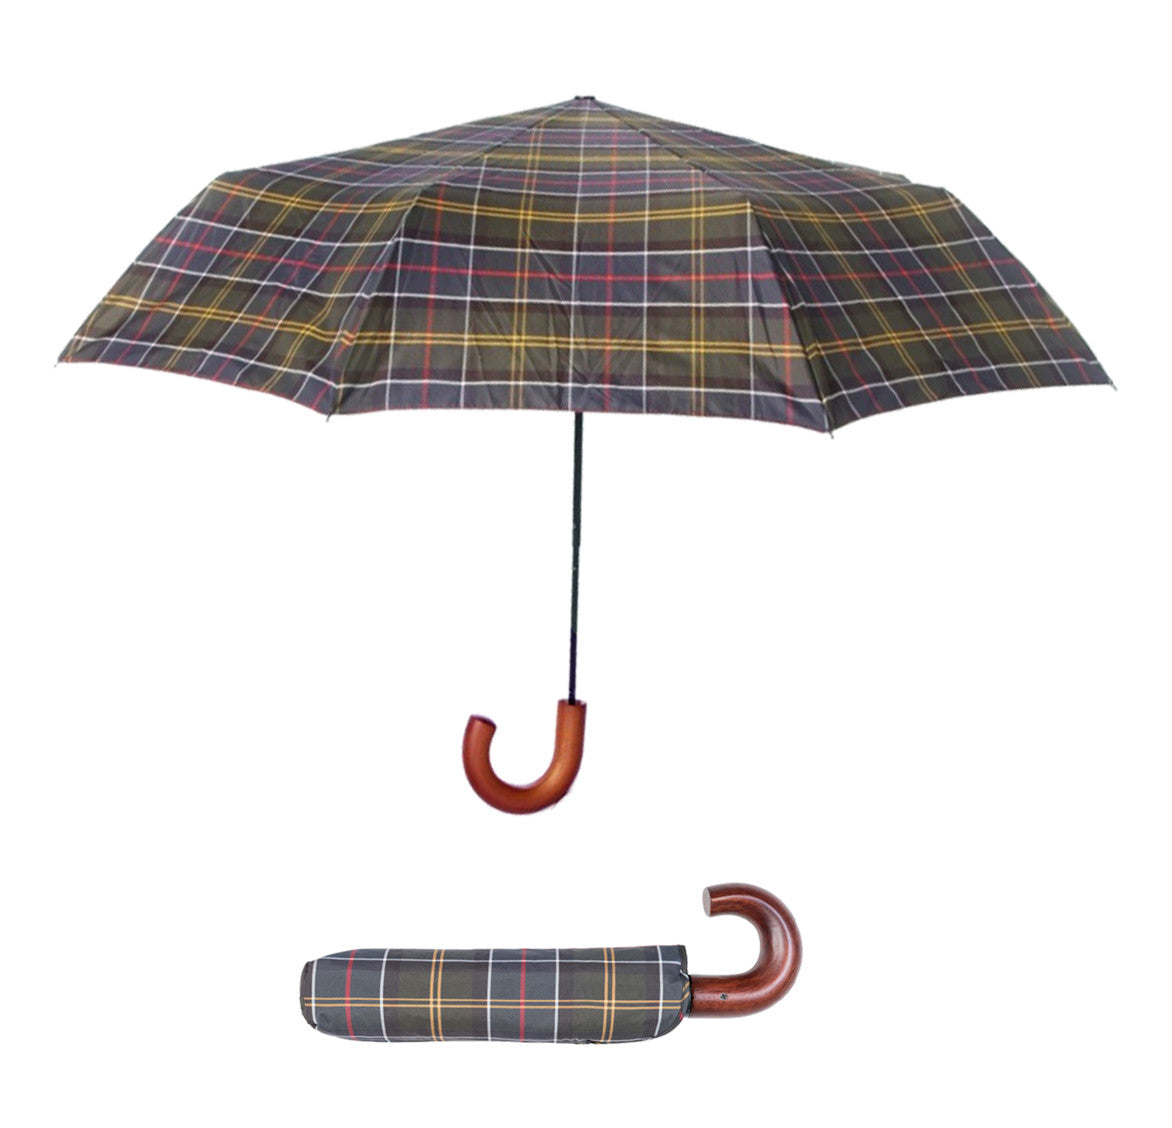 Barbour Telescopic Umbrella - North Shore Saddlery